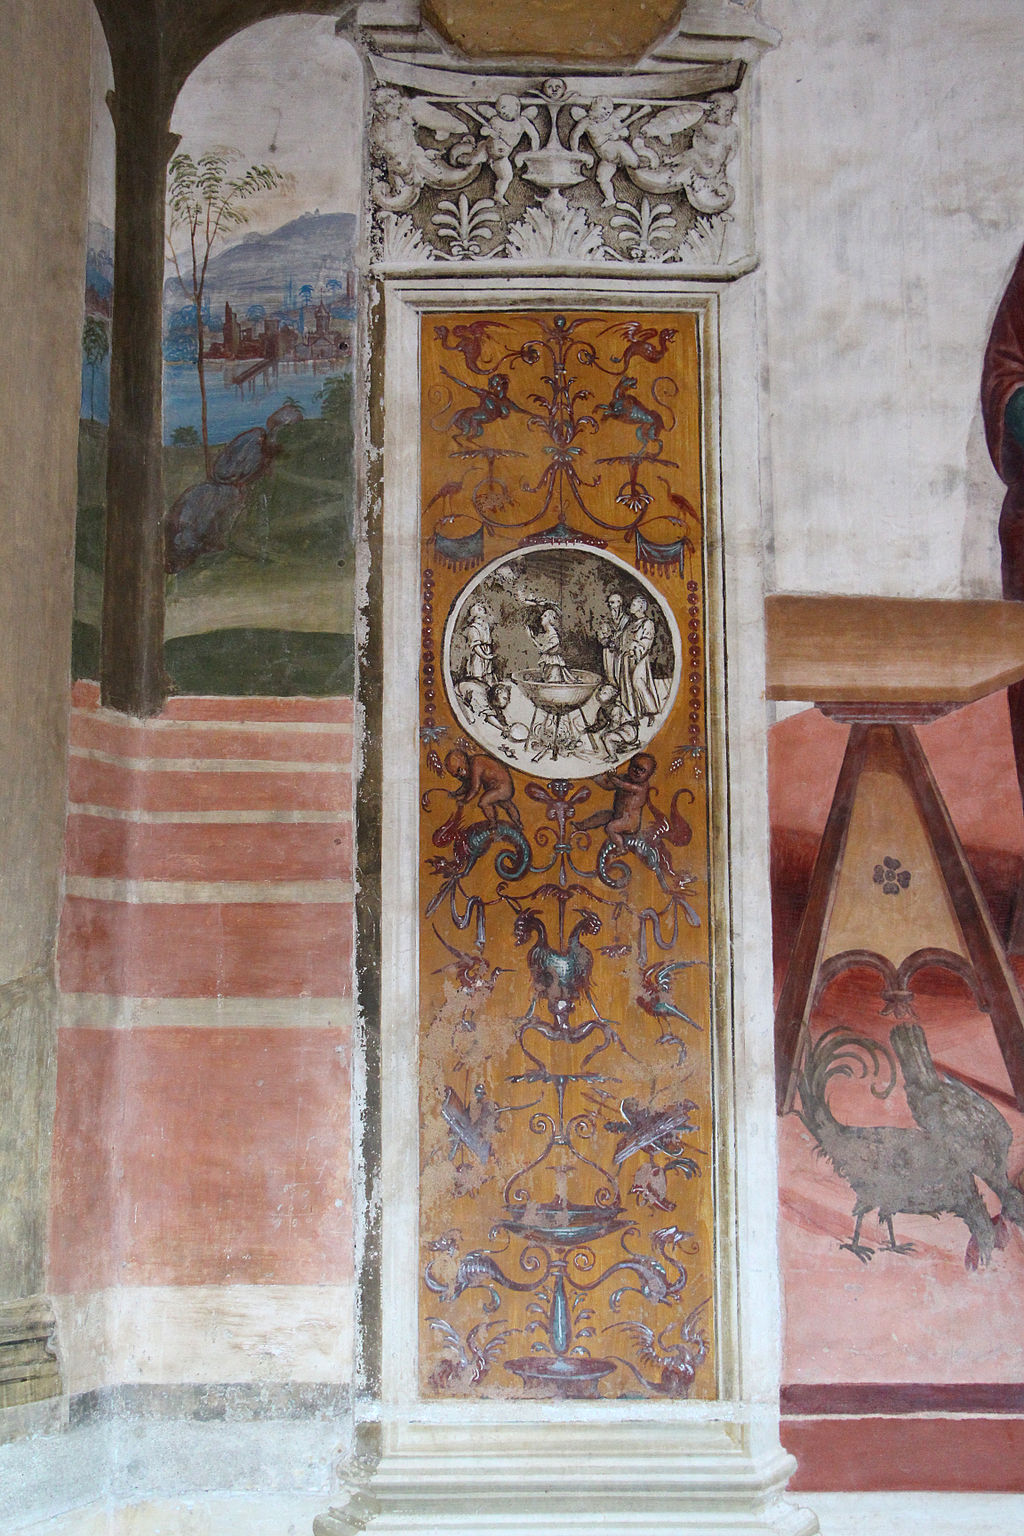 Il Sodoma, grotesque paintings in the Great Cloister, Abbey of Monte Oliveto Maggiore